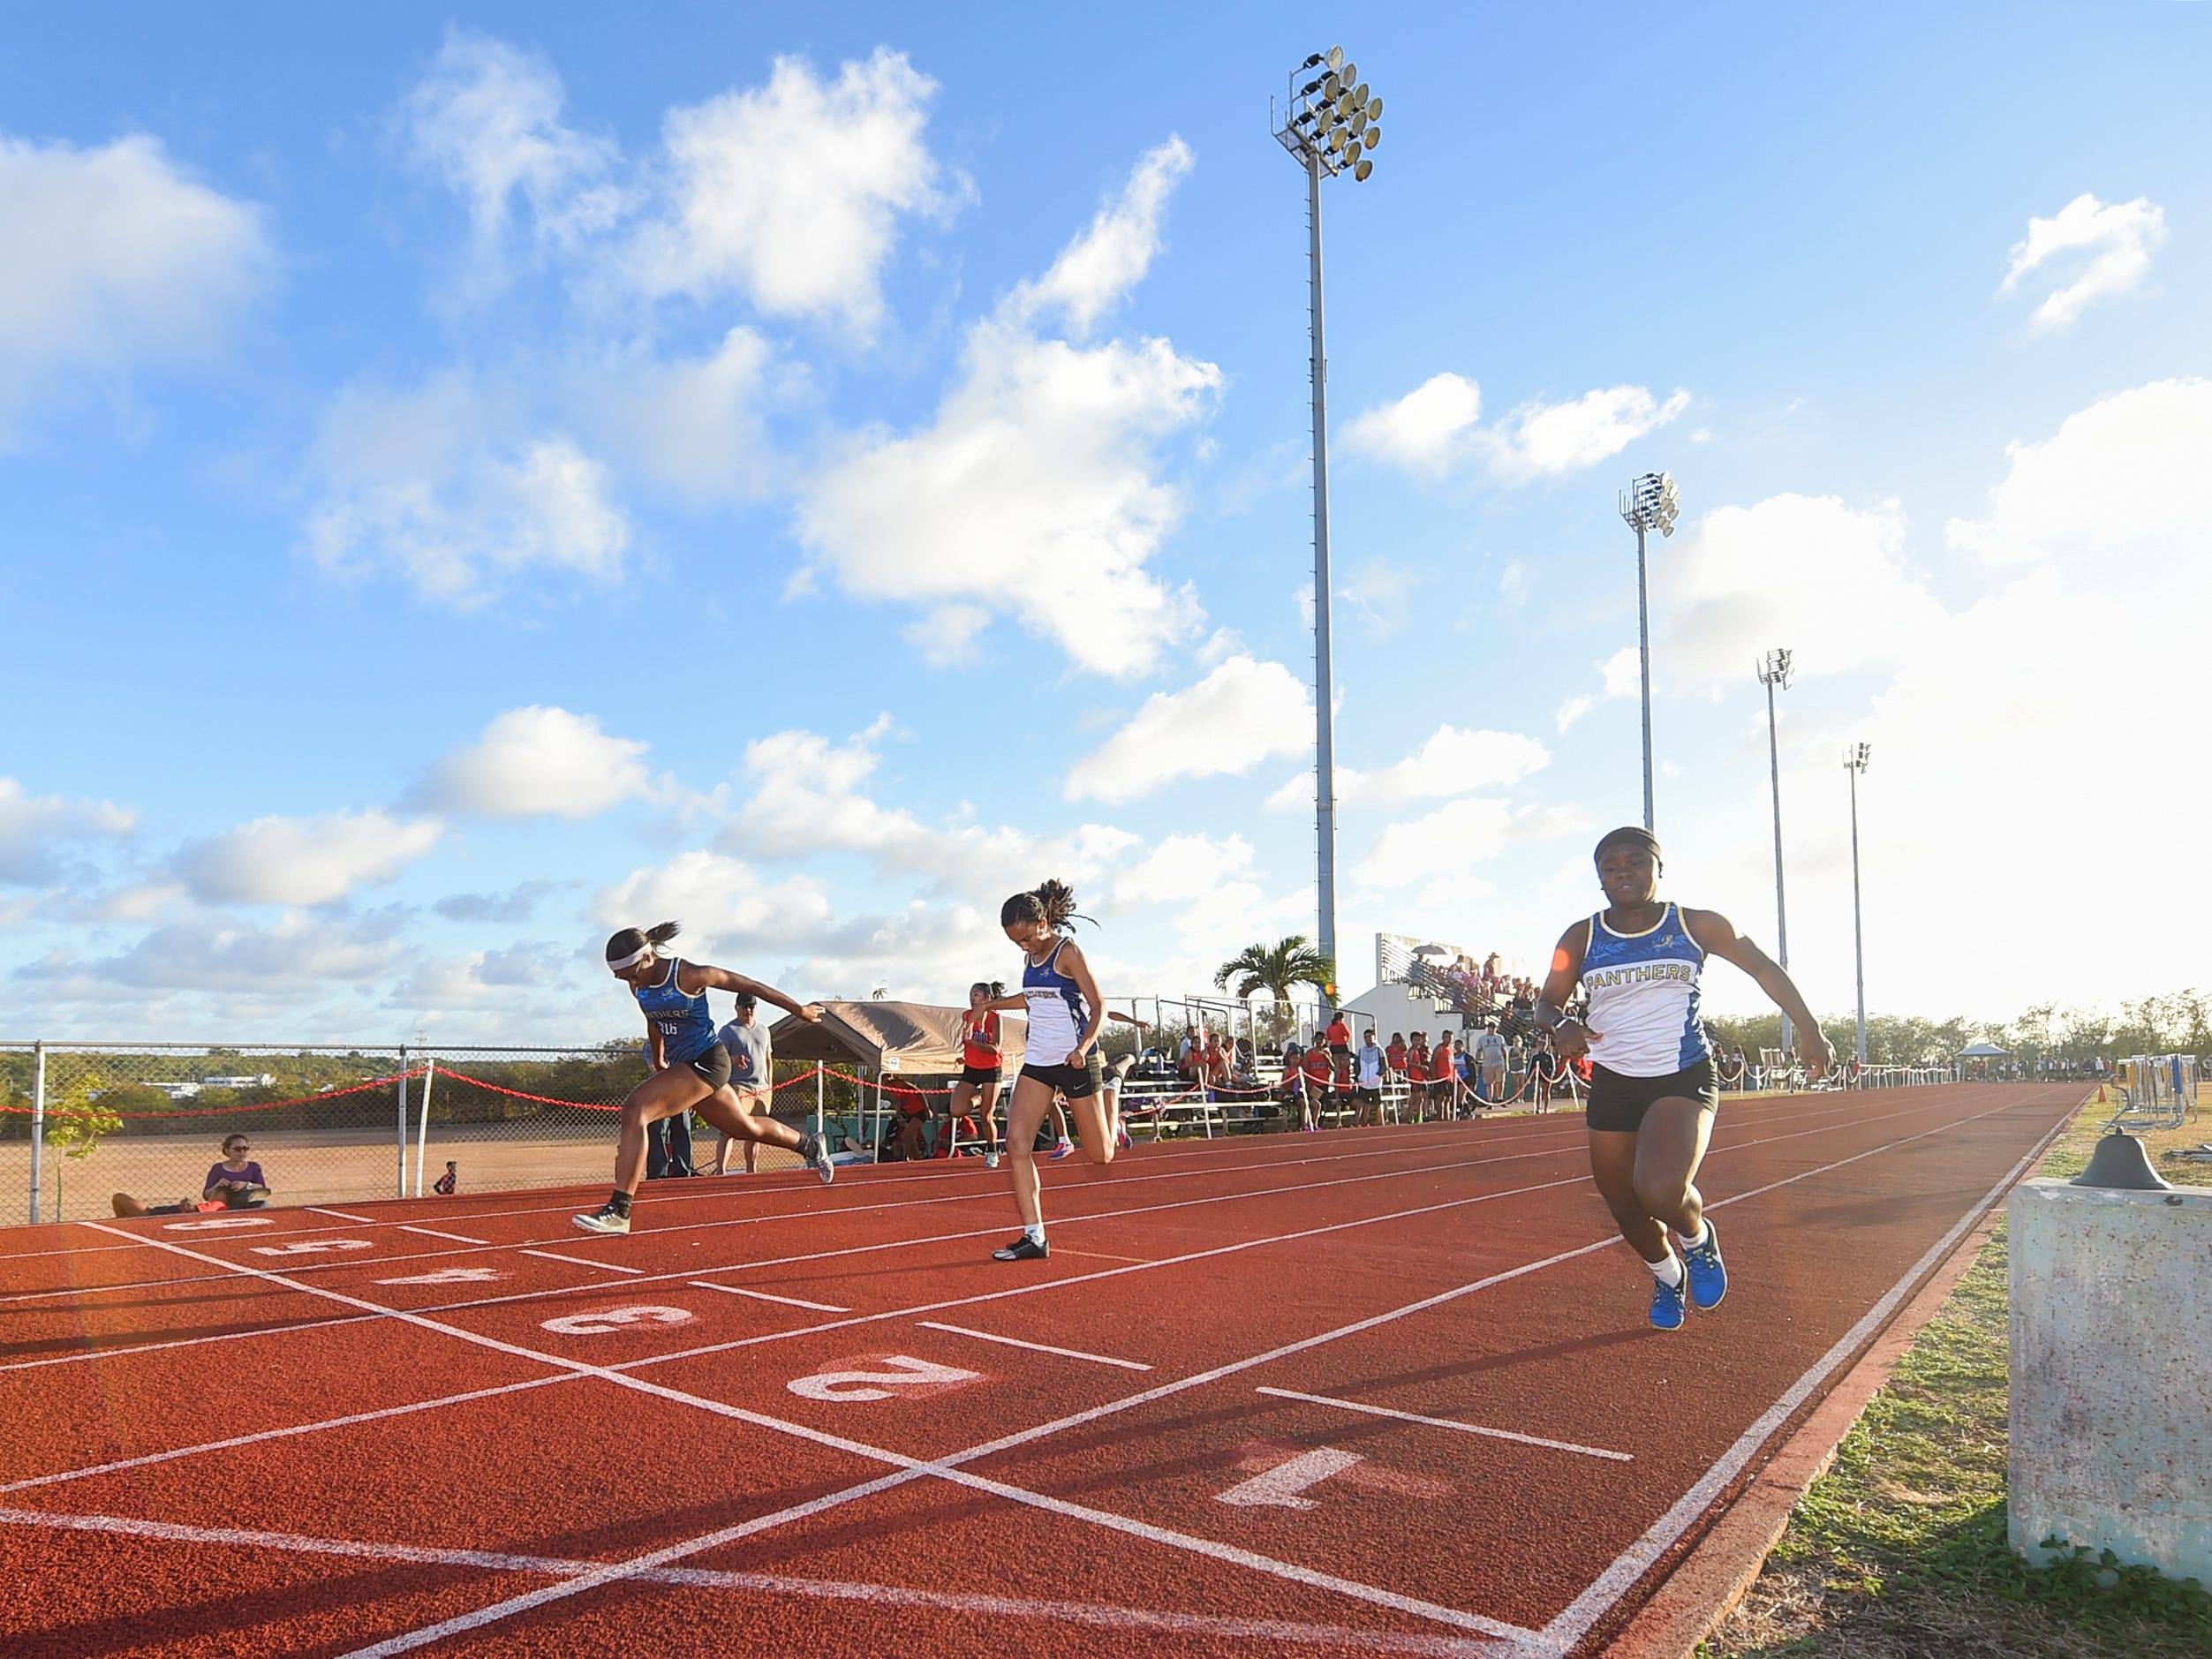 Track and field athletes compete for their schools during a IIAAG Track and Field meet at John F. Kennedy Ramsey Field in Tamuning on May 10, 2019.